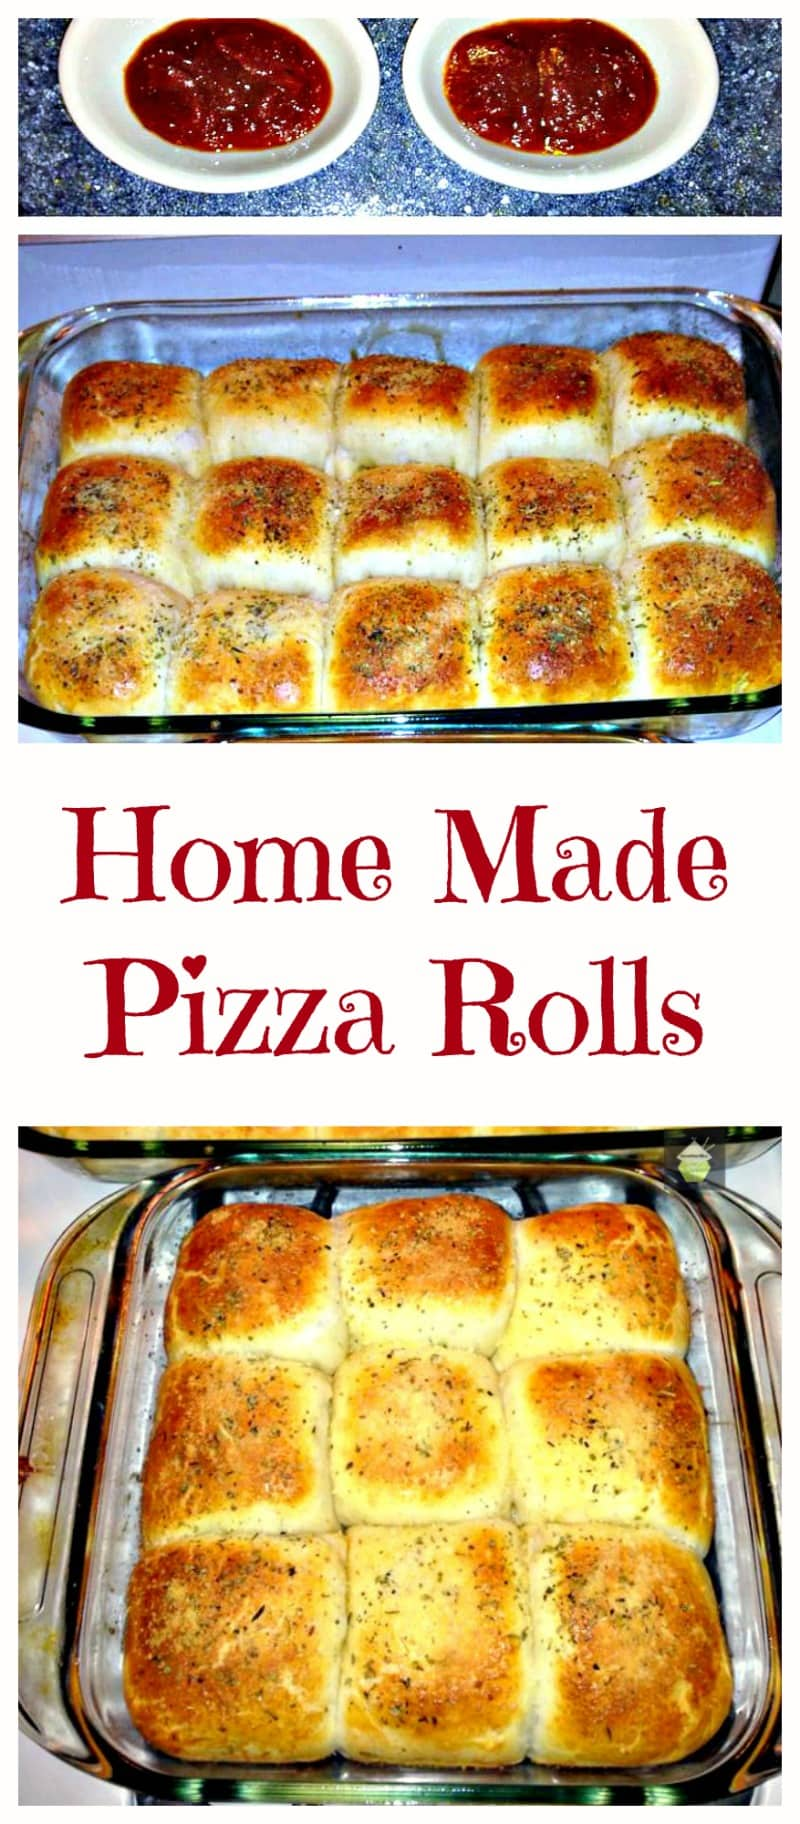 Home Made Pizza Rolls Lovefoodies